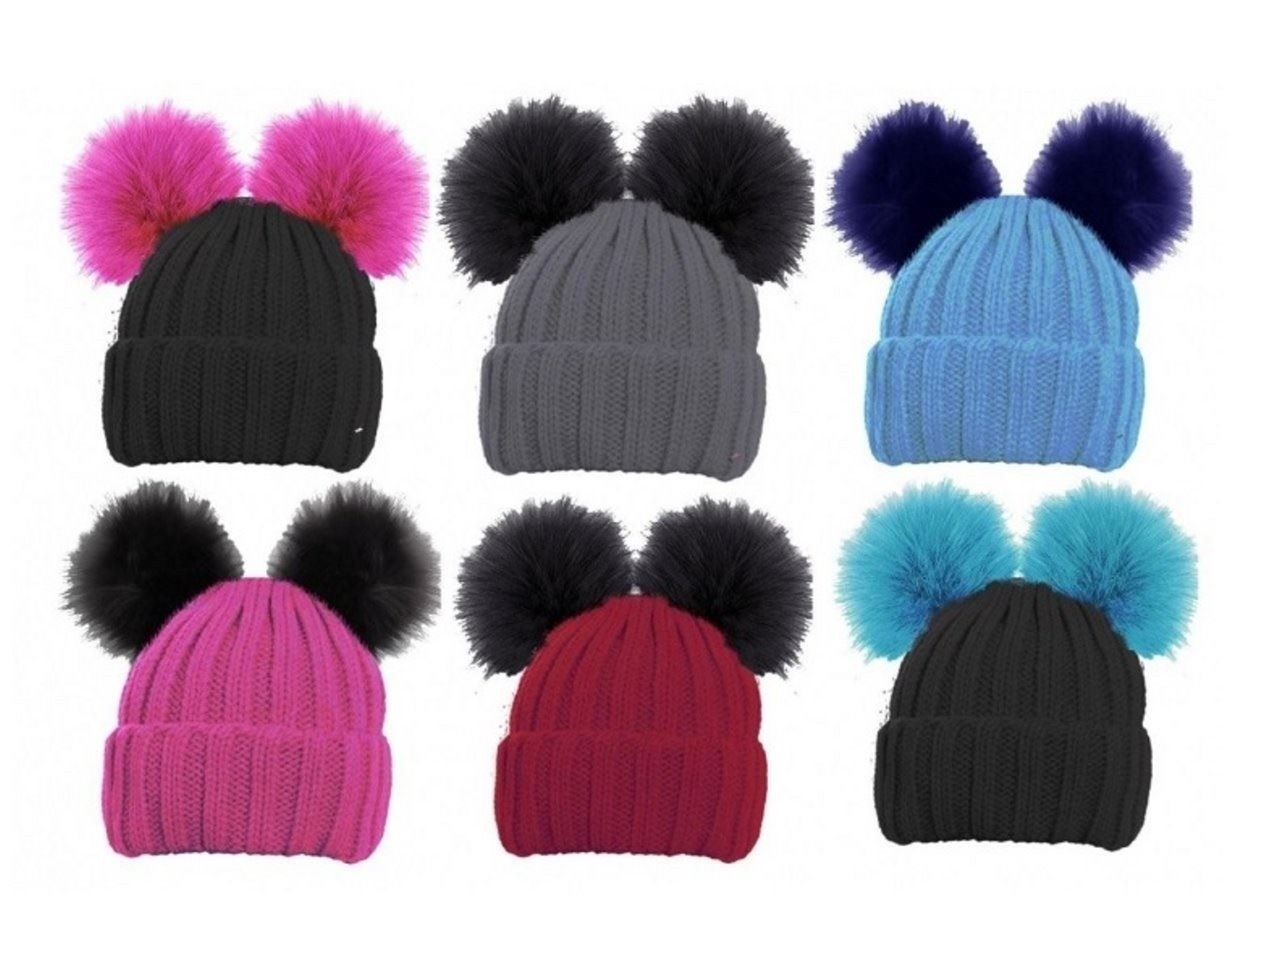 ebec4a2f05e Details about Girls Hat Bobble Pom-pom Ribbed Chunky Beanie Winter